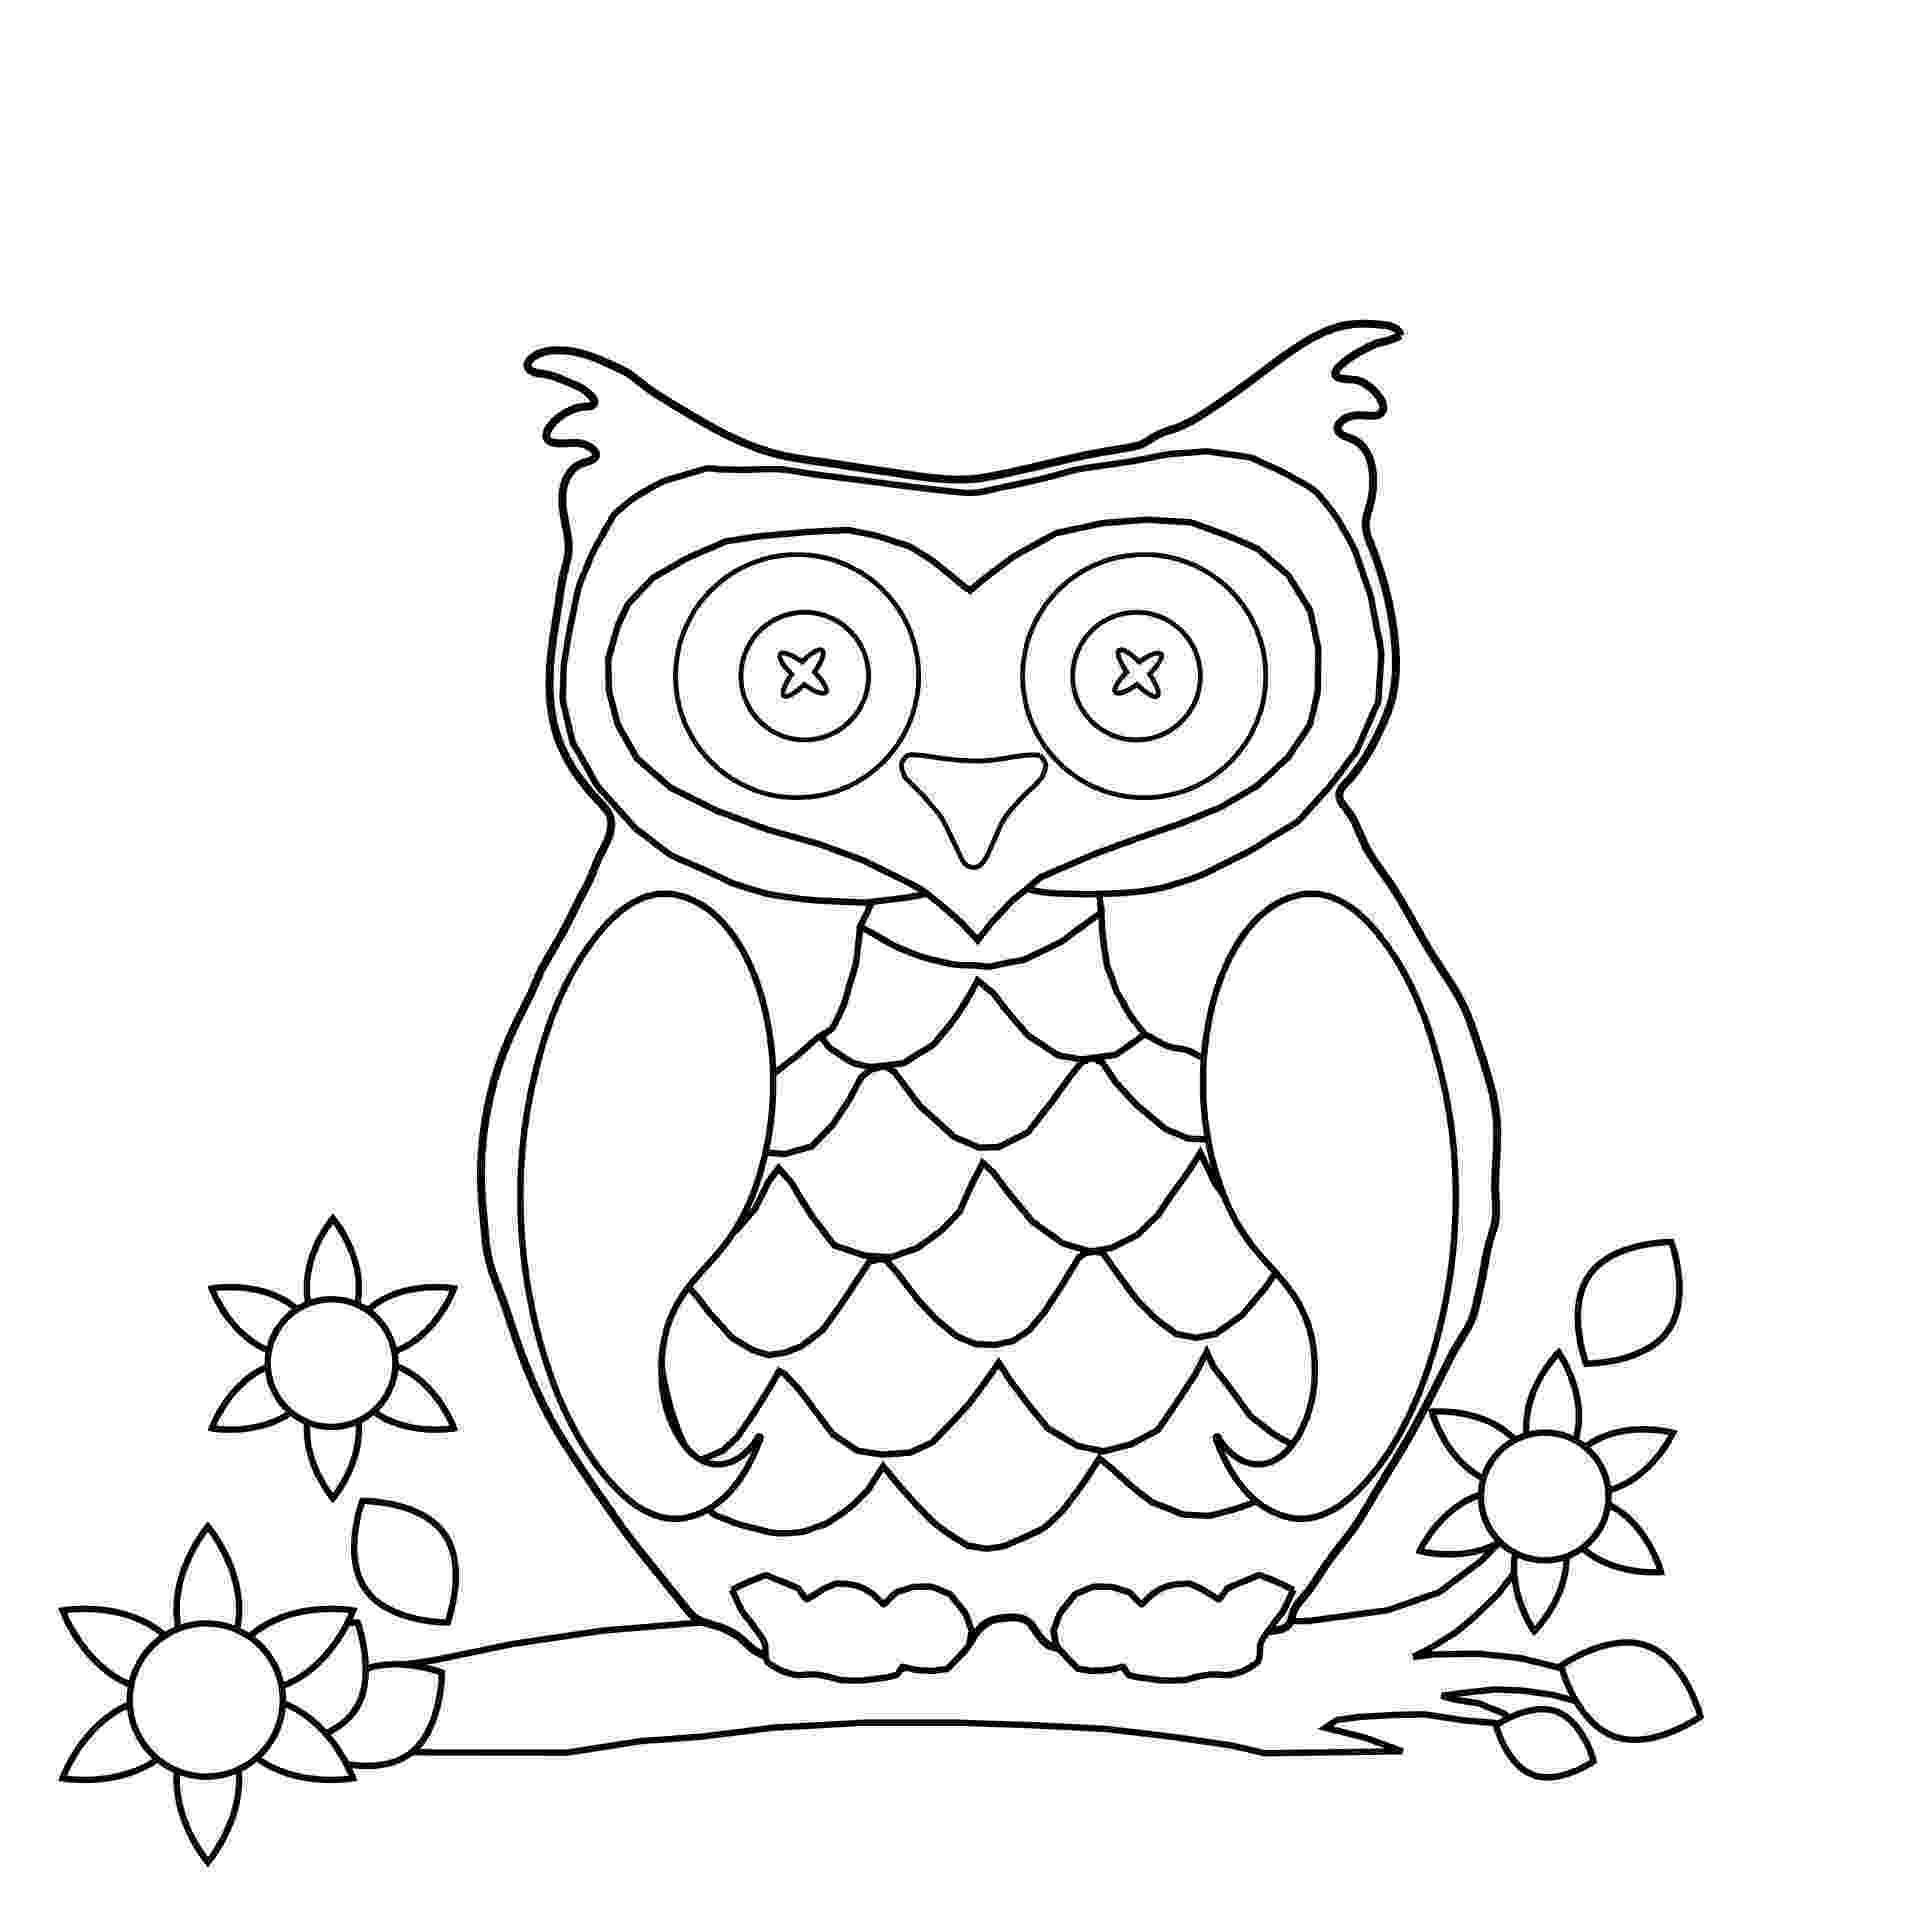 printable owl colouring coloring pages of owls to print owl coloring page 29 colouring owl printable